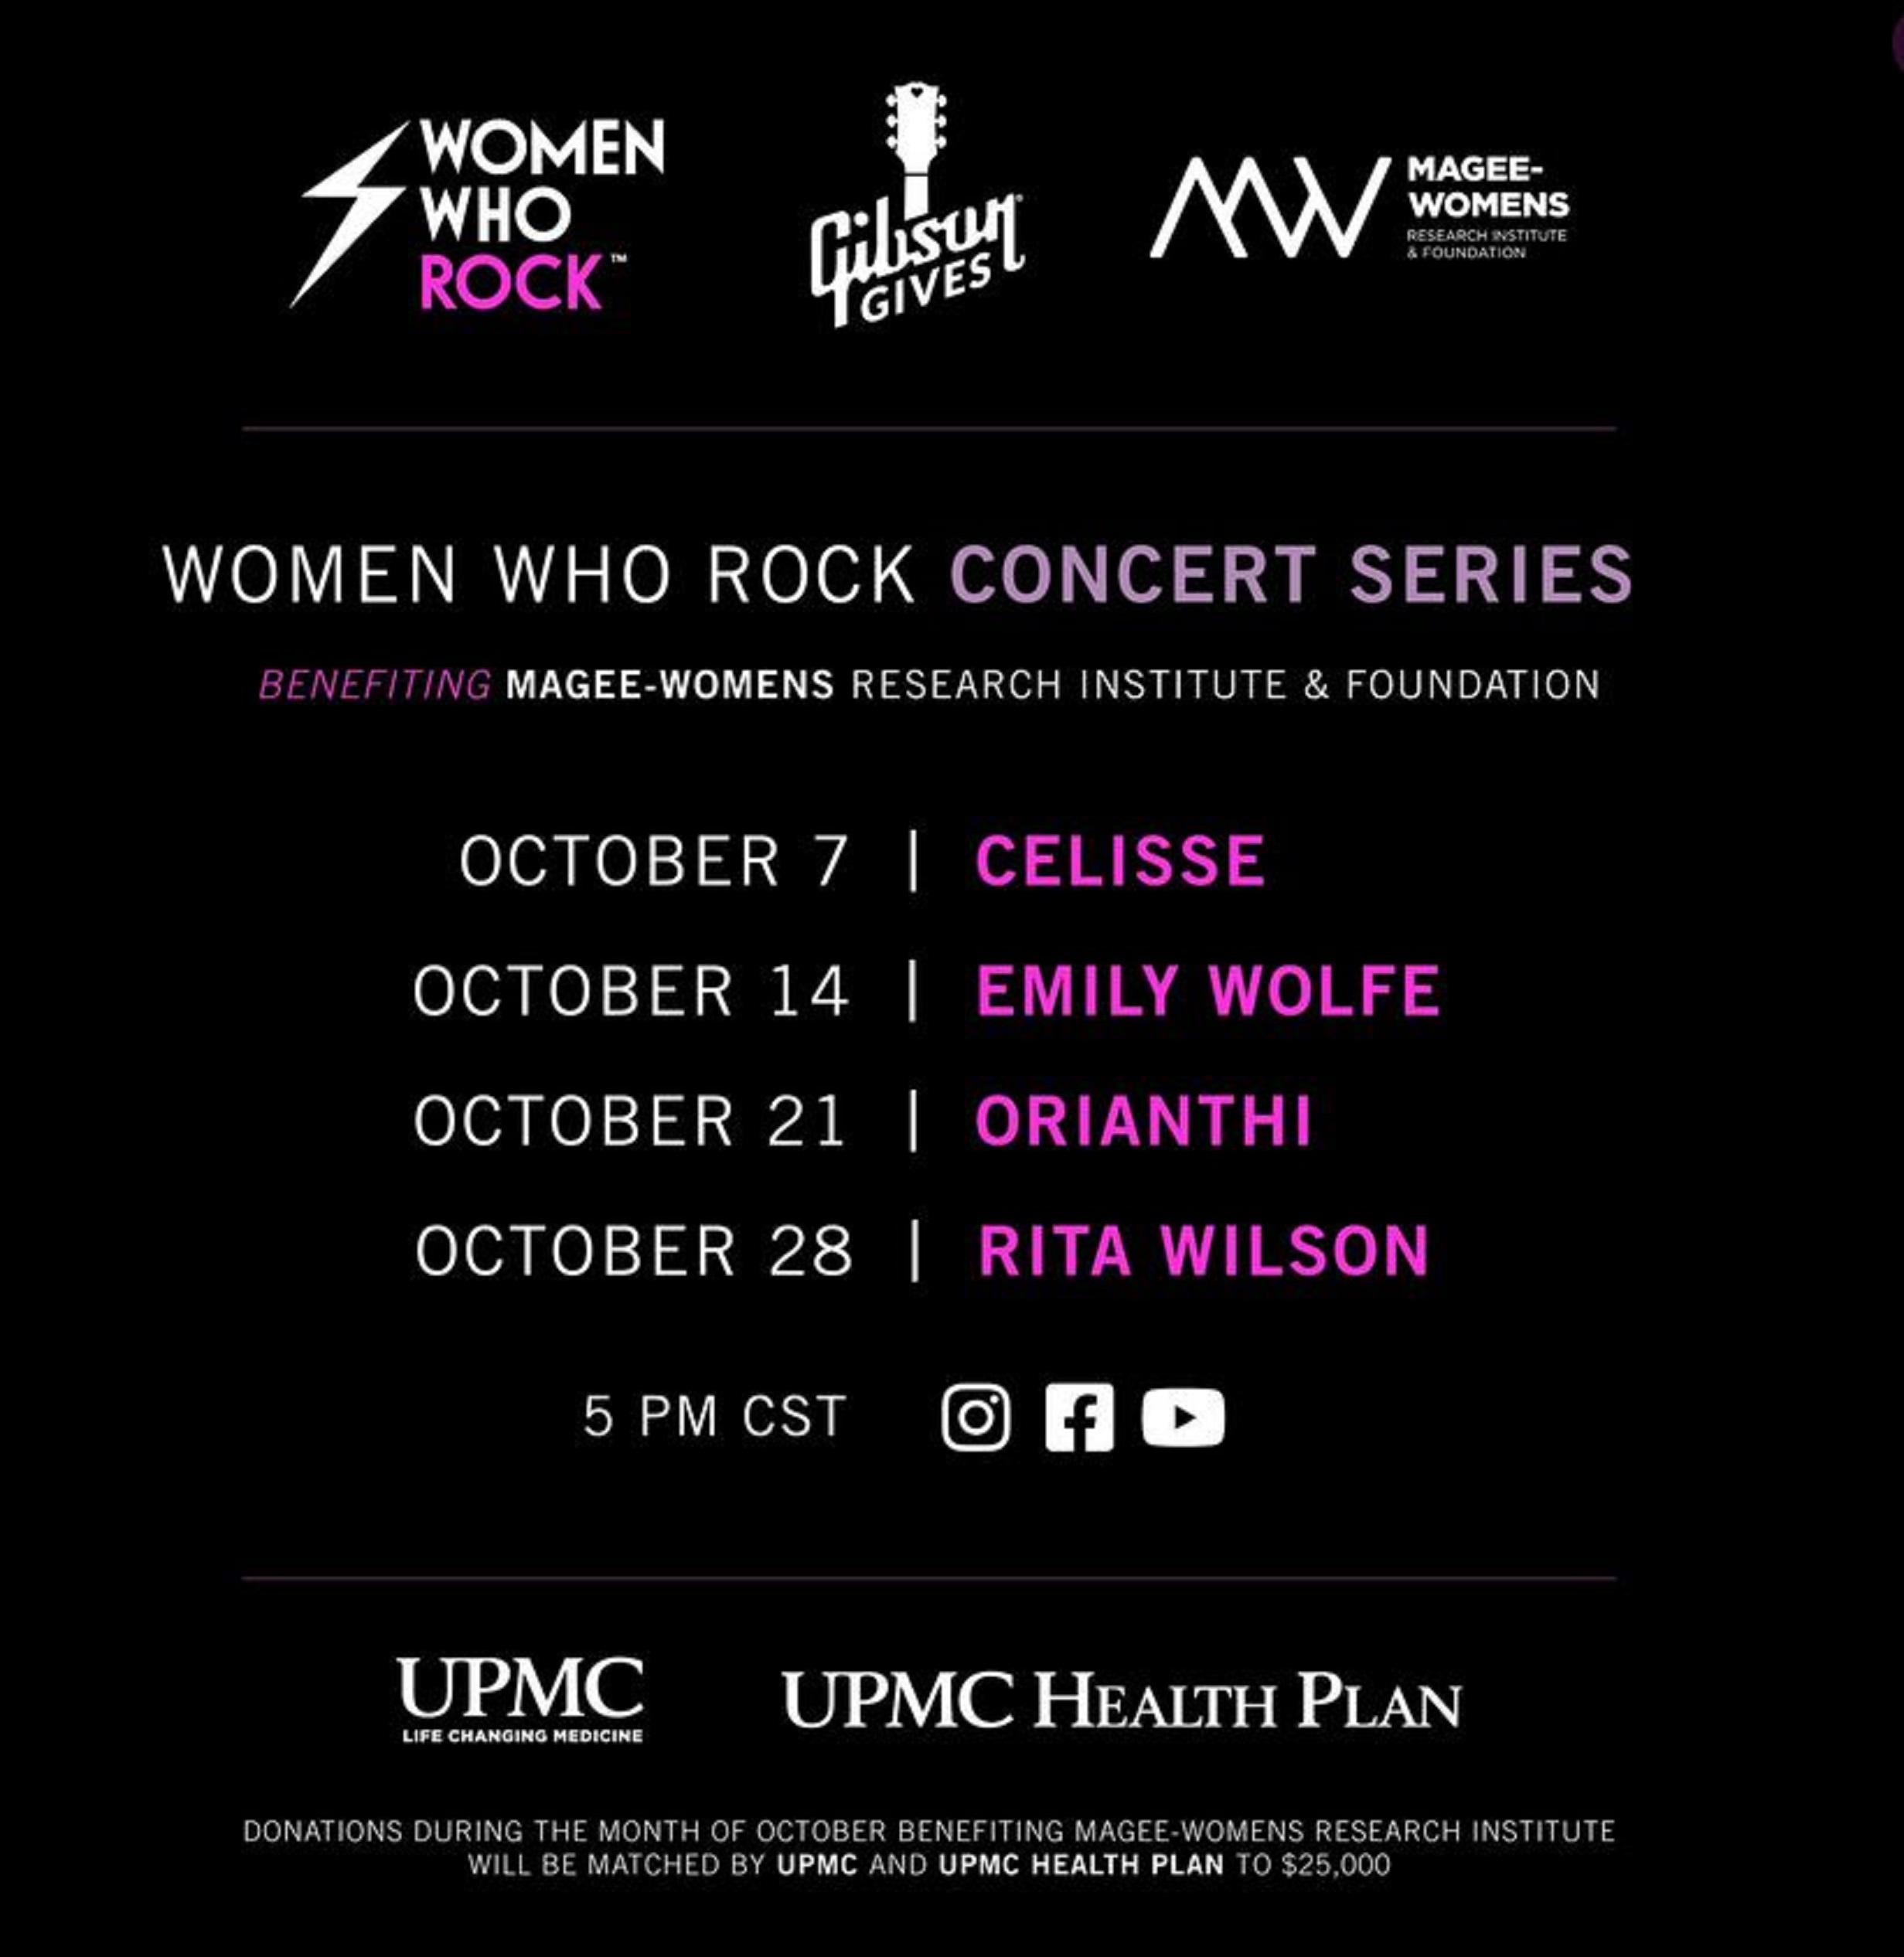 Rita Wilson To Headline Women Who Rock